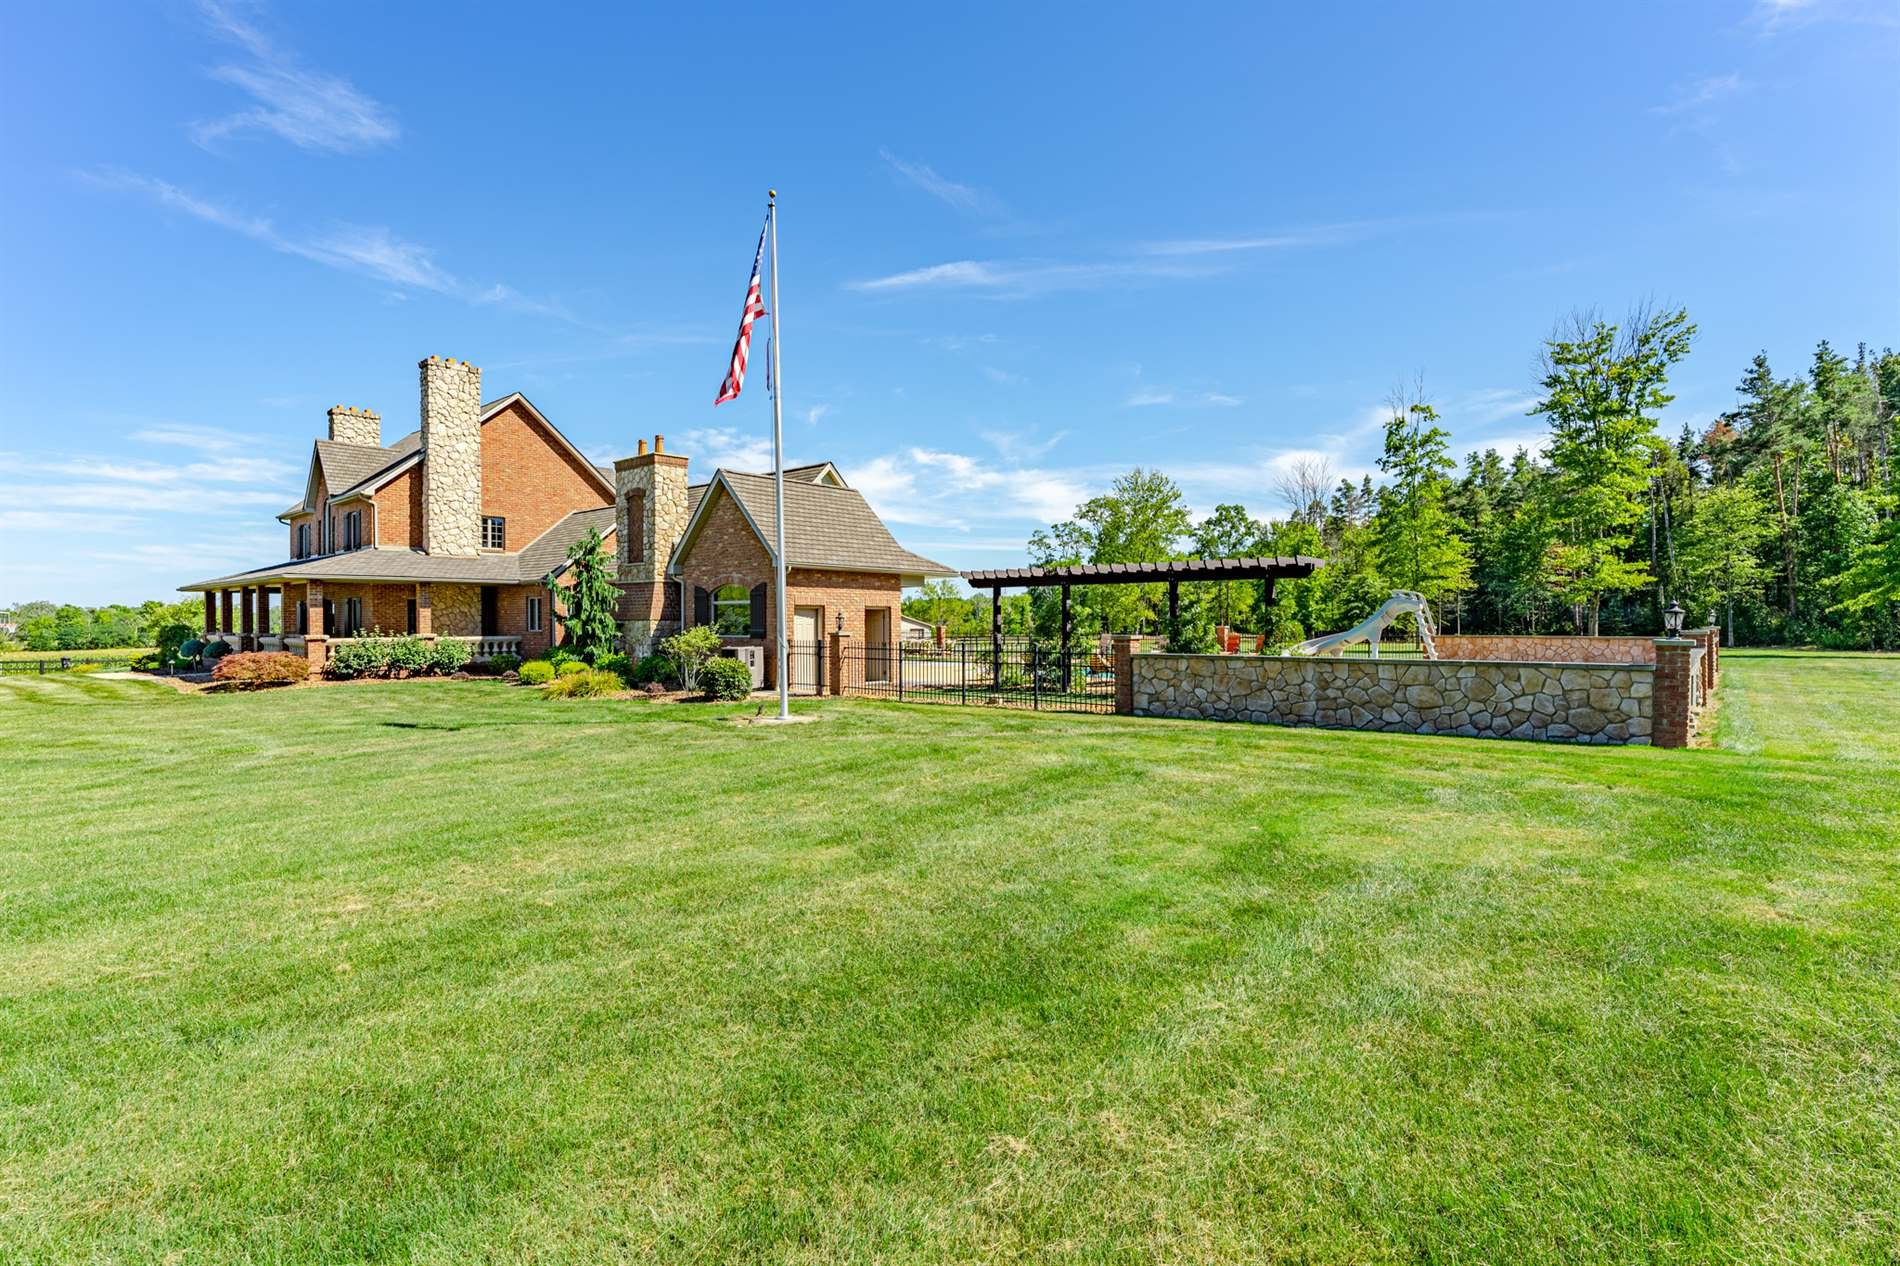 6491 Metz Rd, New Middletown, OH 44442